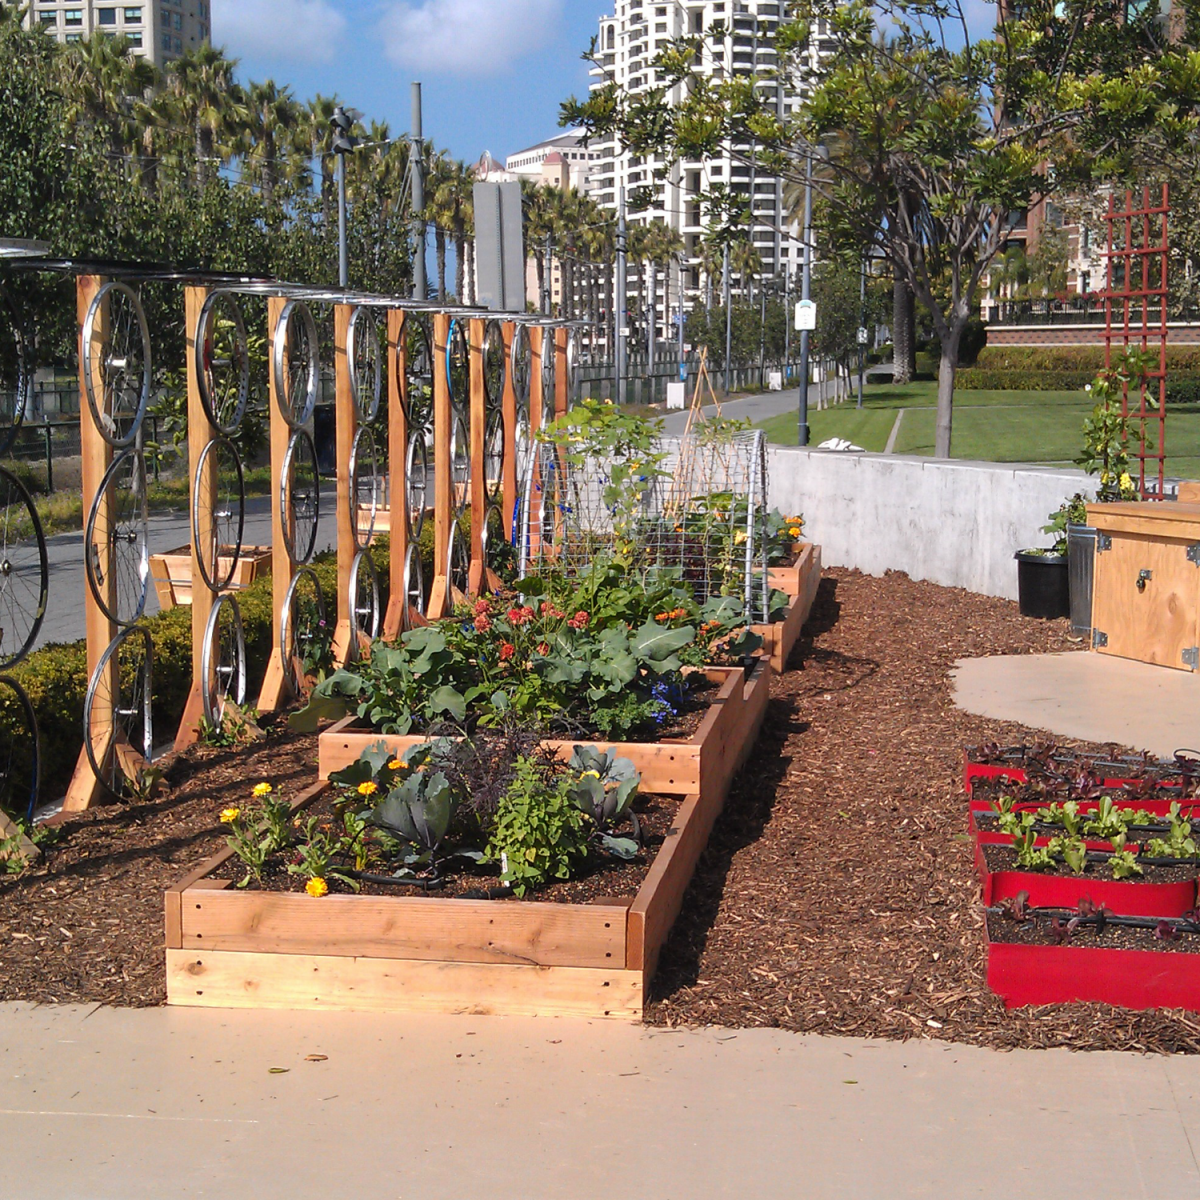 Garden installed and maintained by Urban Plantations at the New Children's Museum in downtown San Diego (Photo Credit: Urban Plantations)